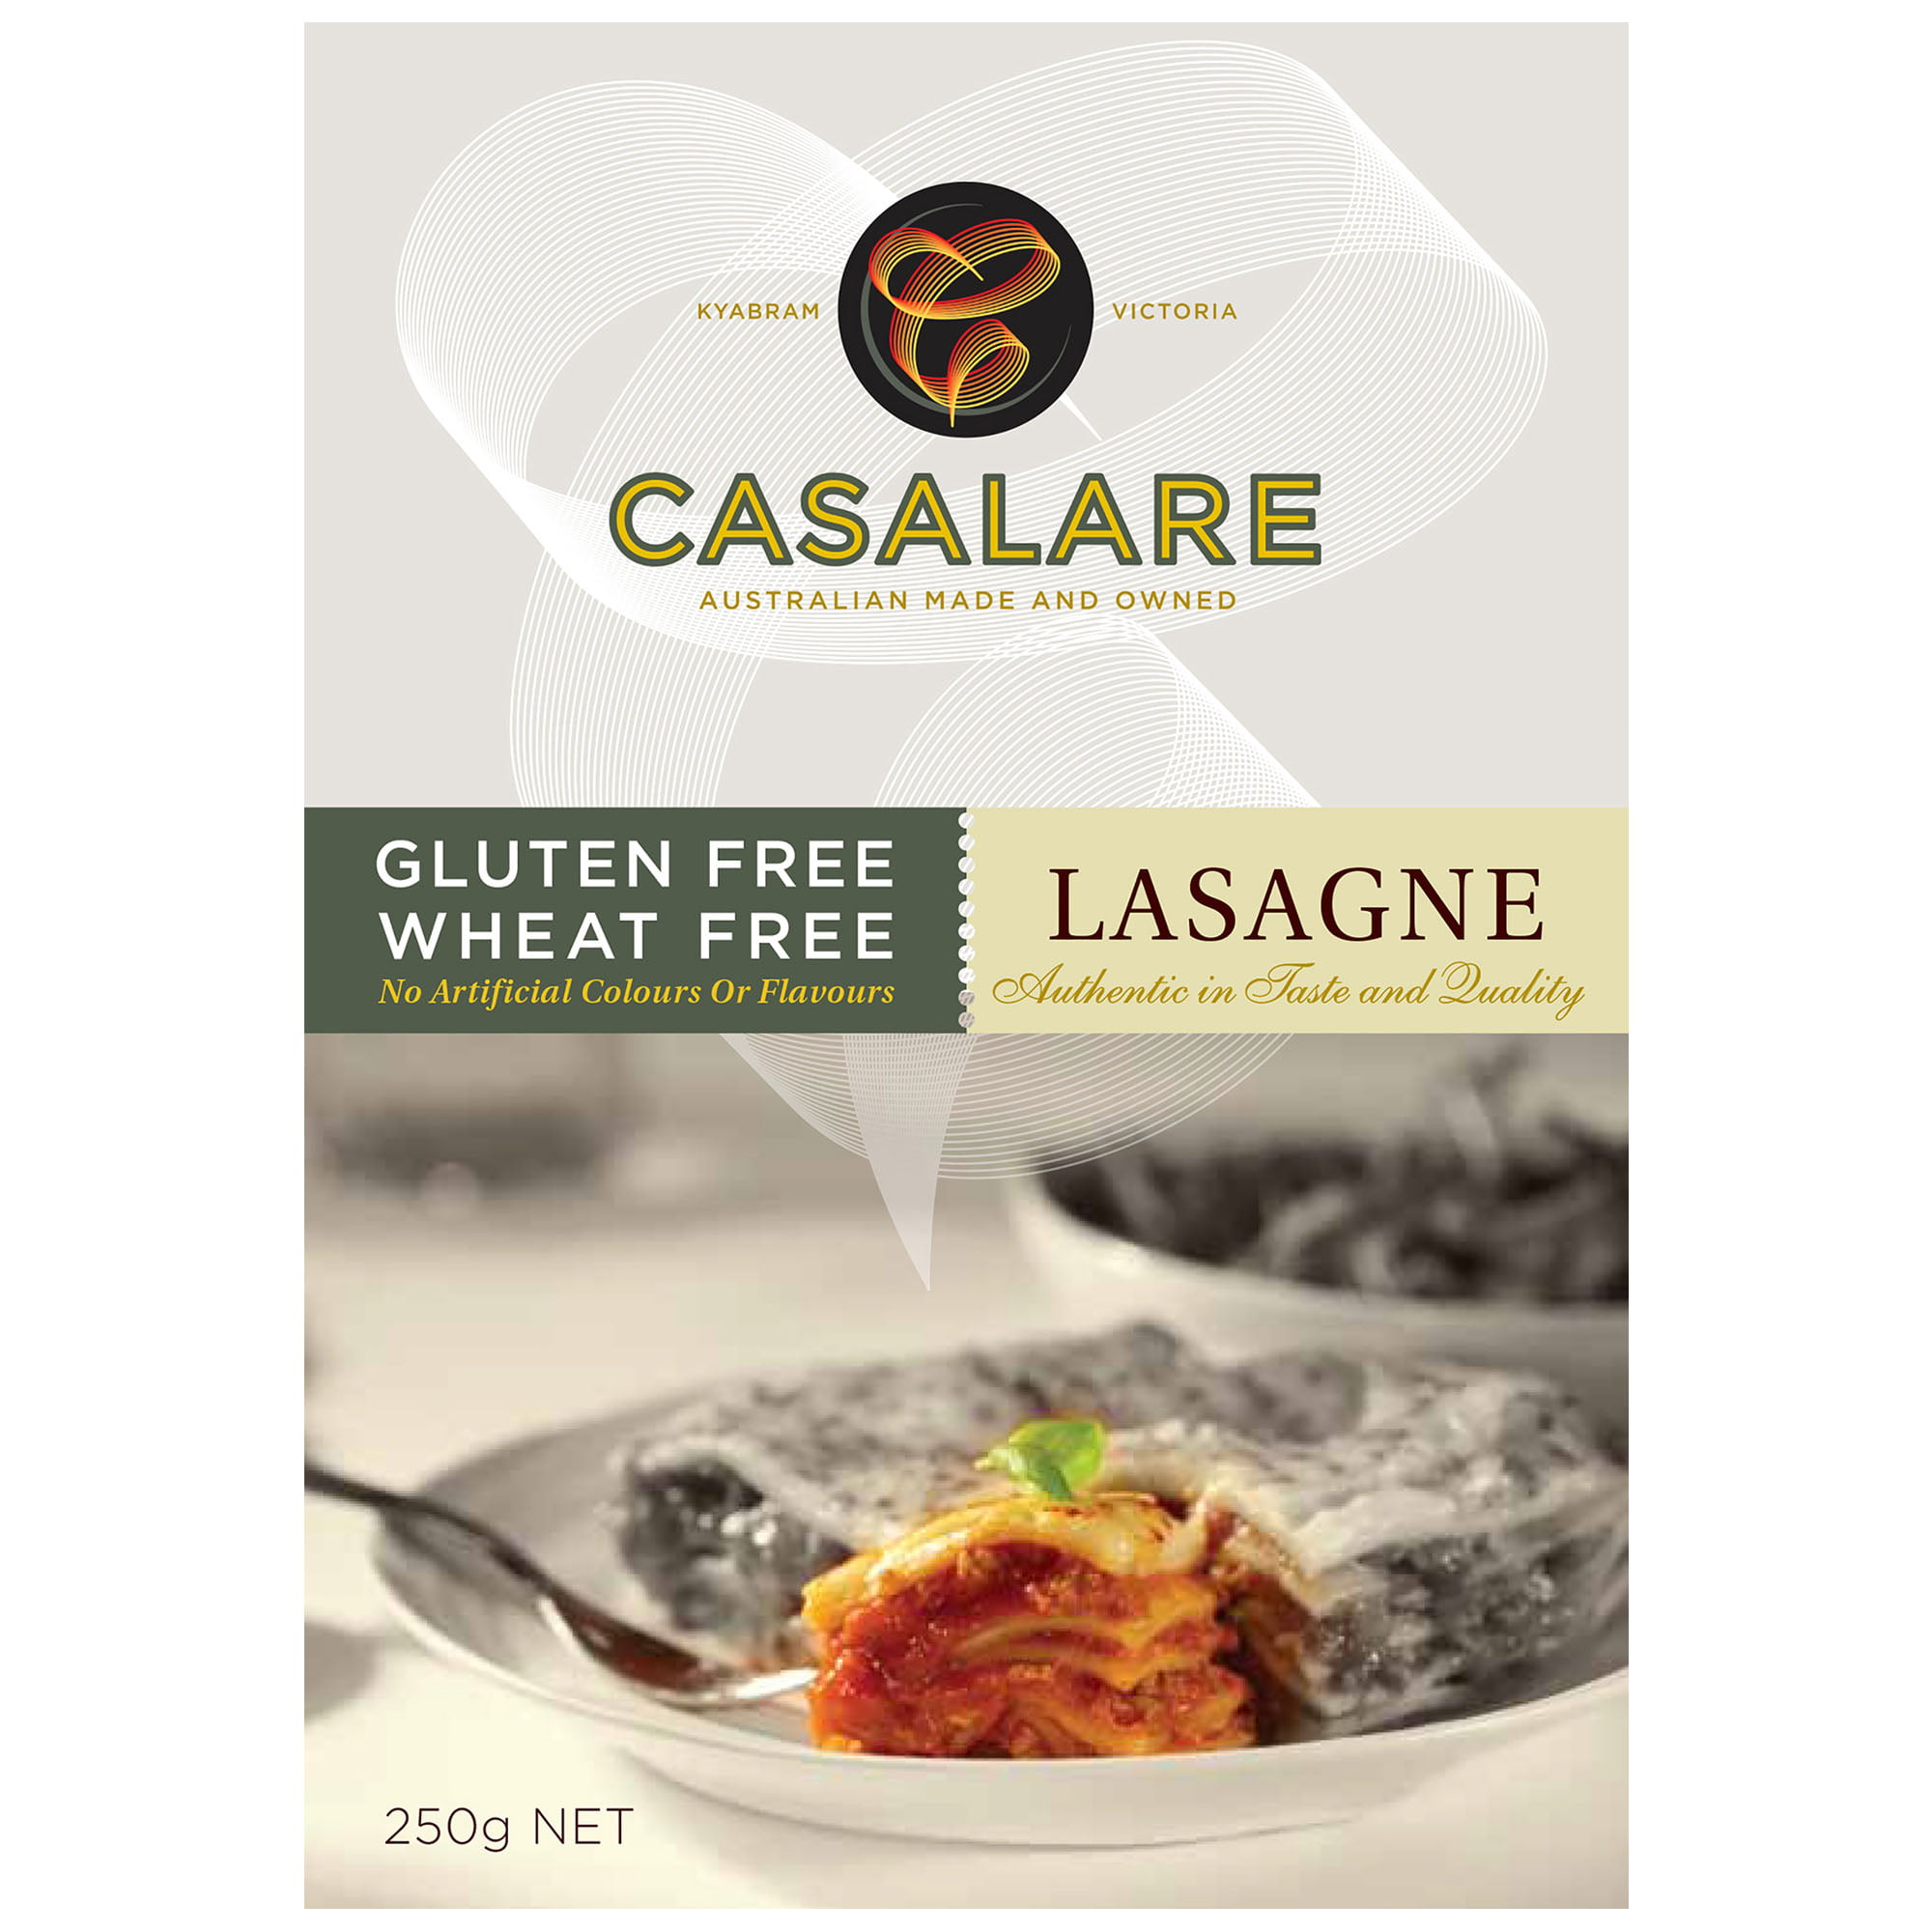 casalare Lasagne box FA copy